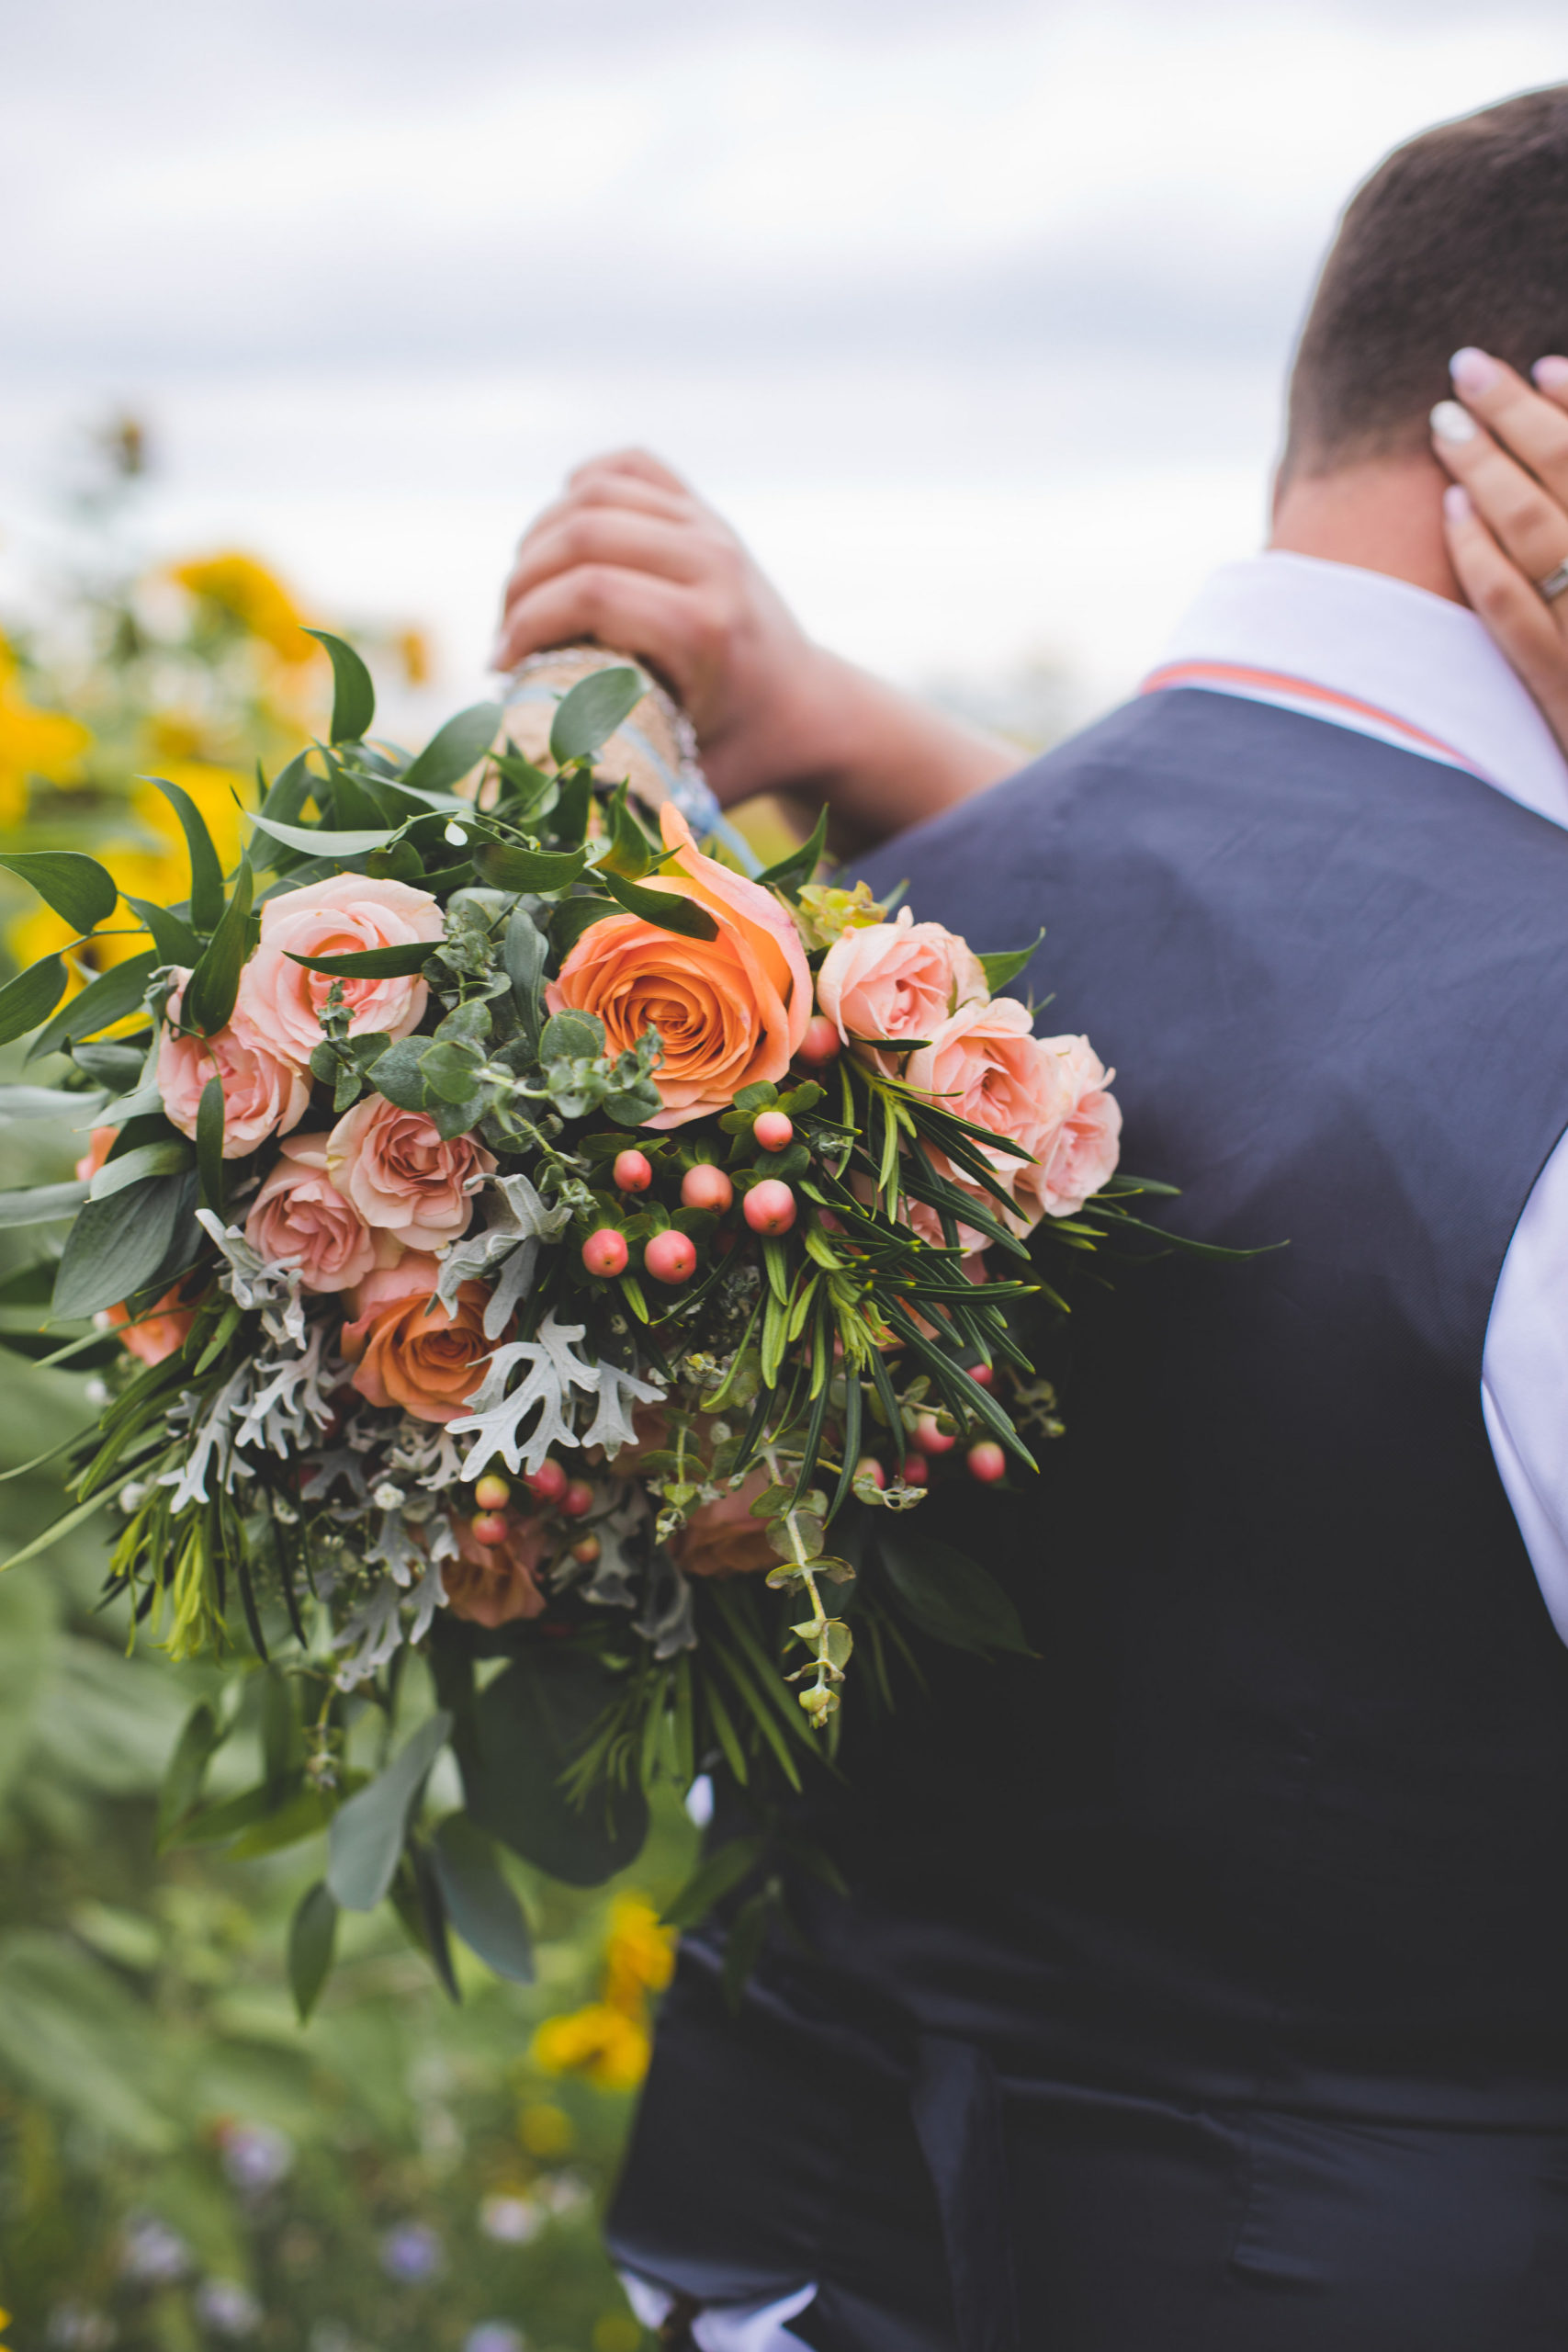 coral and peach toned flower bouquets add a vibrant flair to this outdoor prairie wedding on a rainy day in Alberta, Canada.